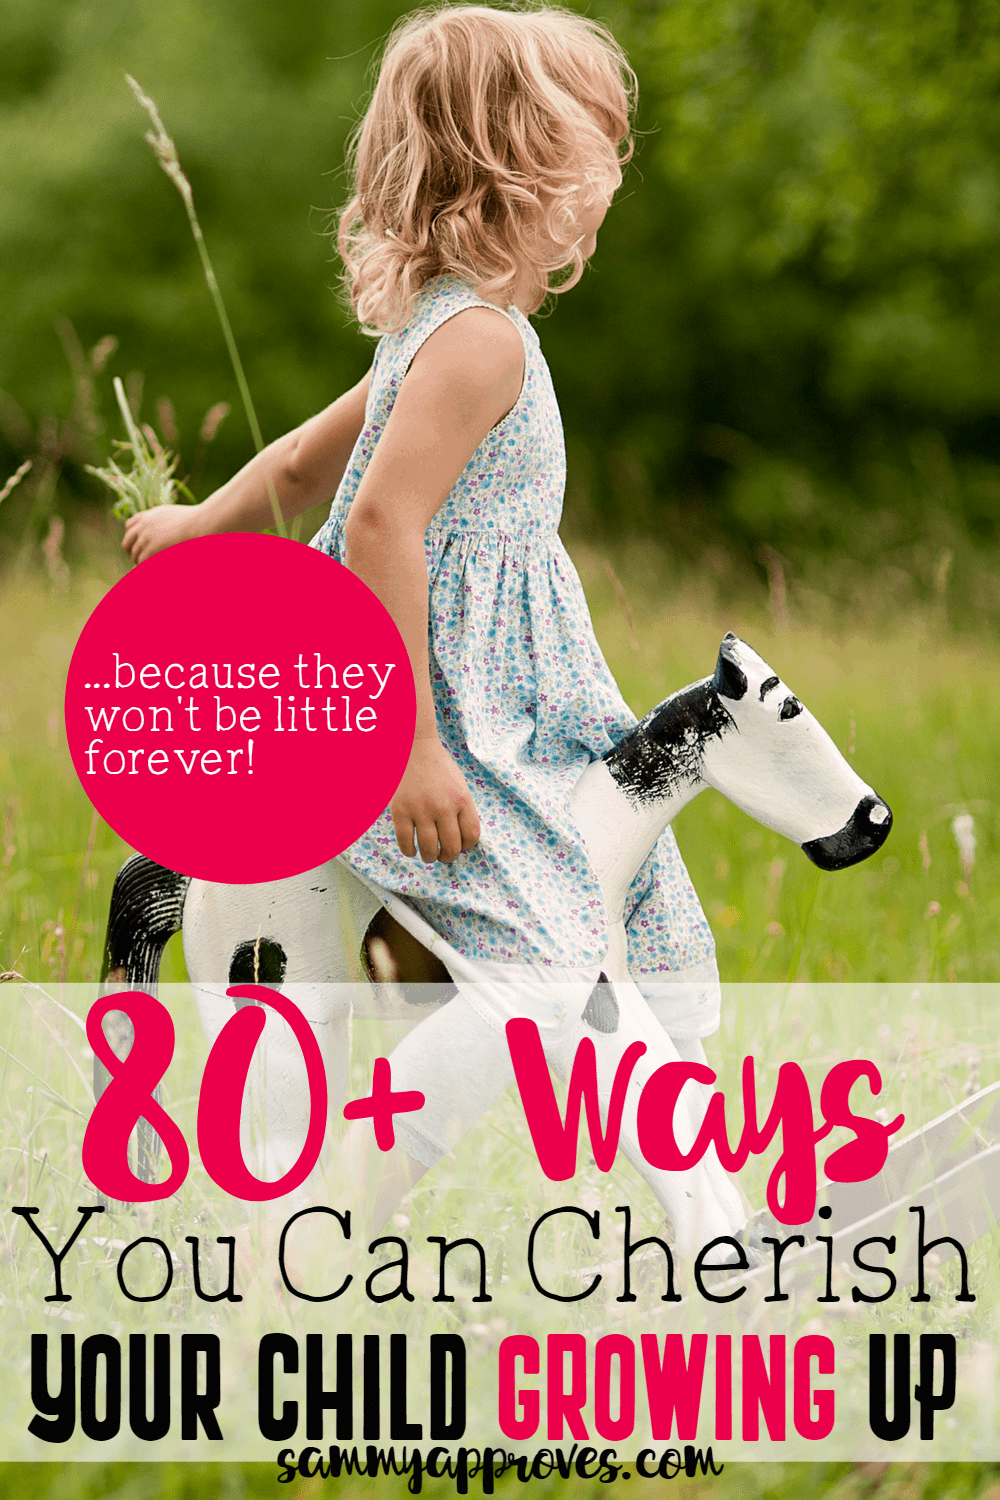 80+ Ways You Can Cherish Your Child Growing Up... Because They Won't Be Little Forever